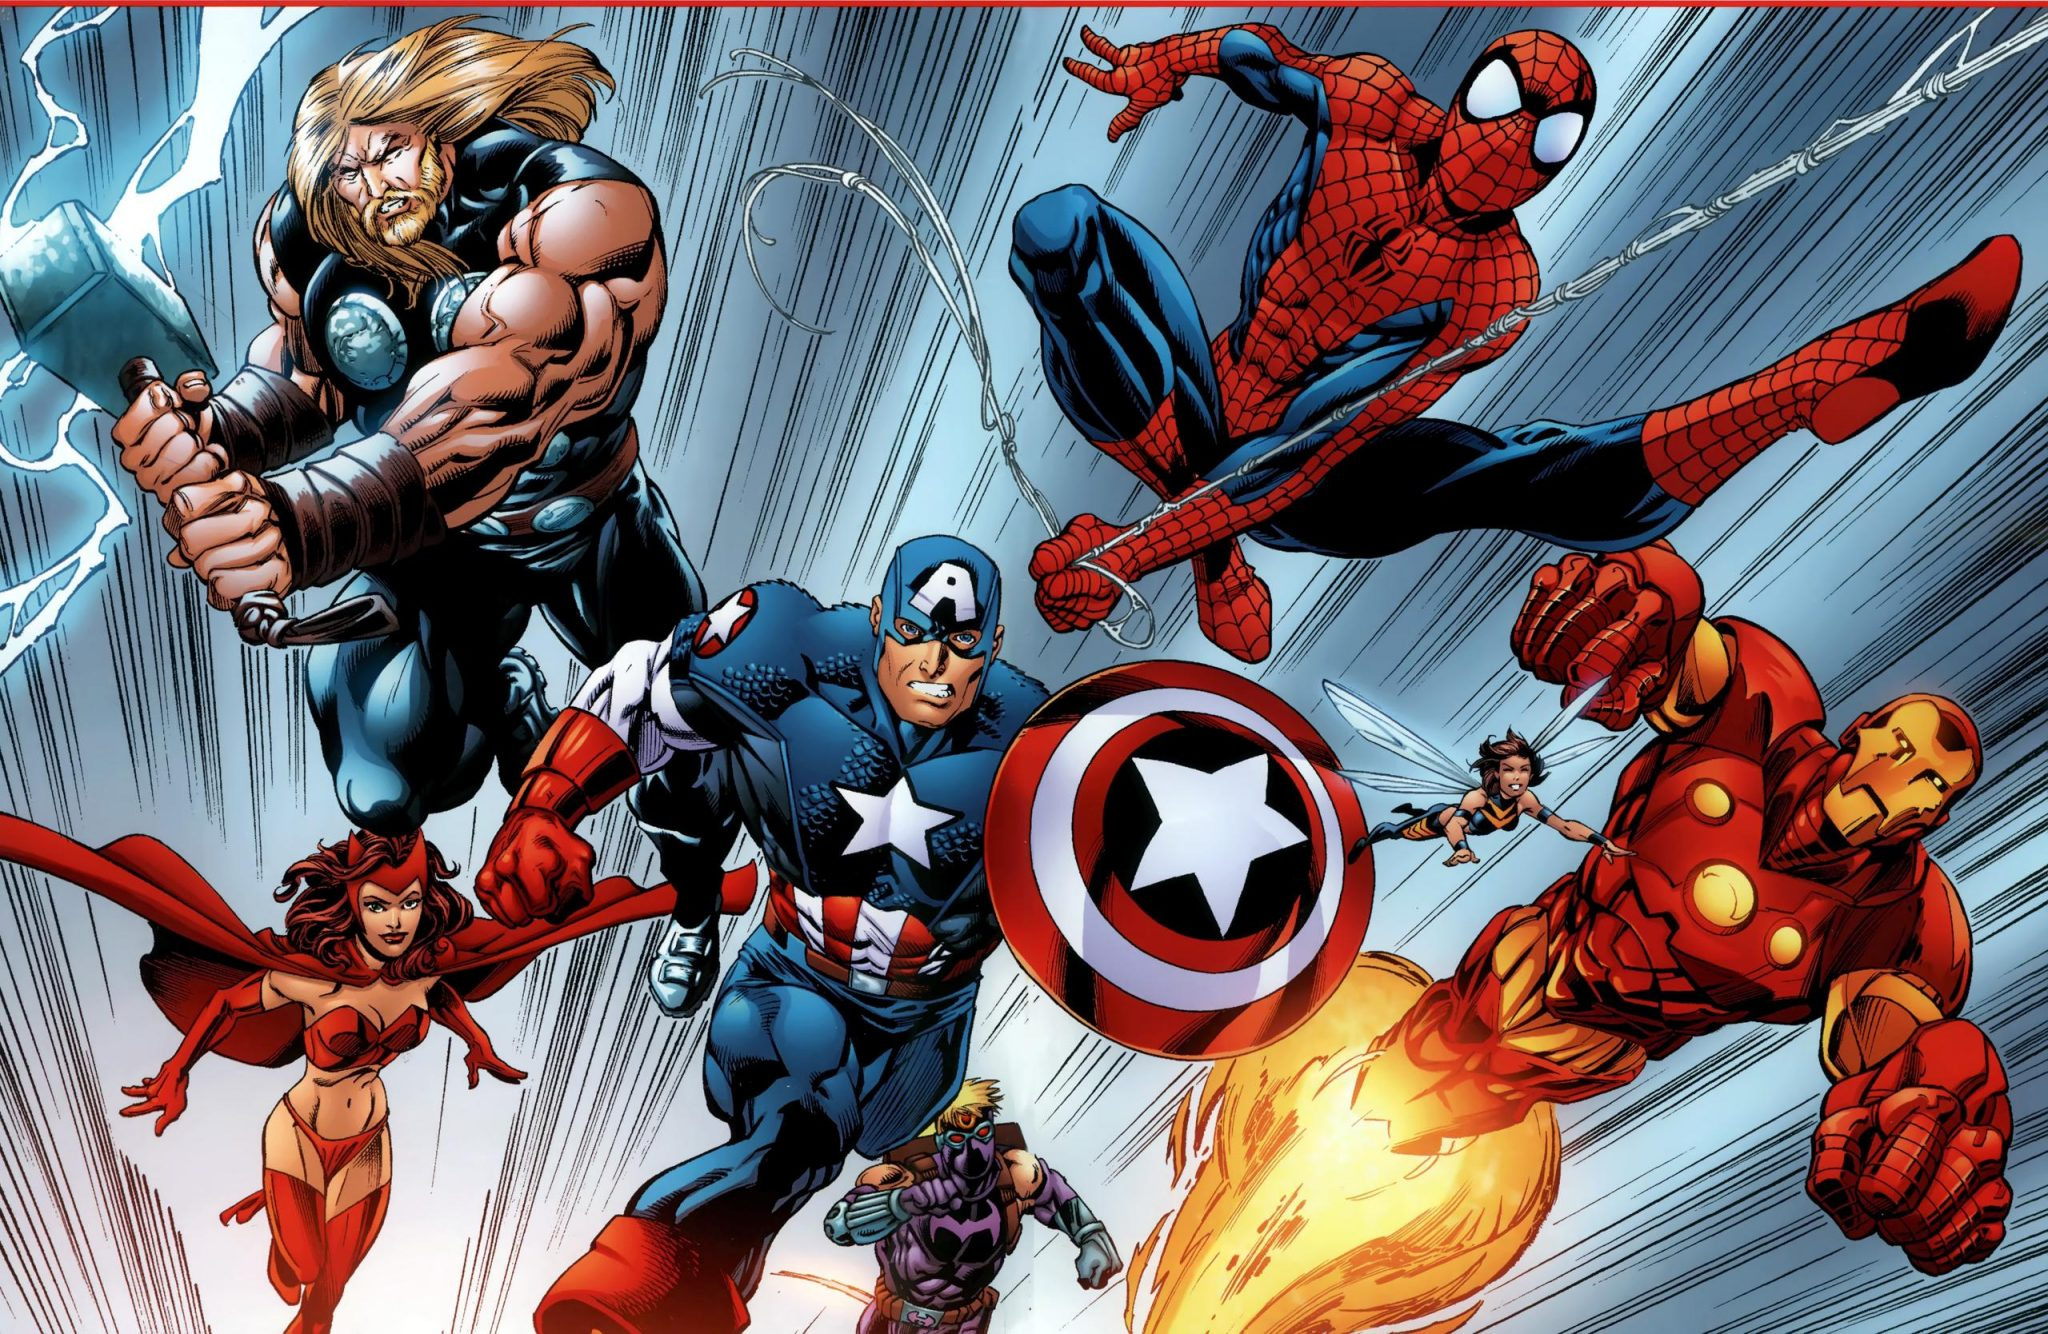 Spider-Man will join the Marvel Cinematic Universe